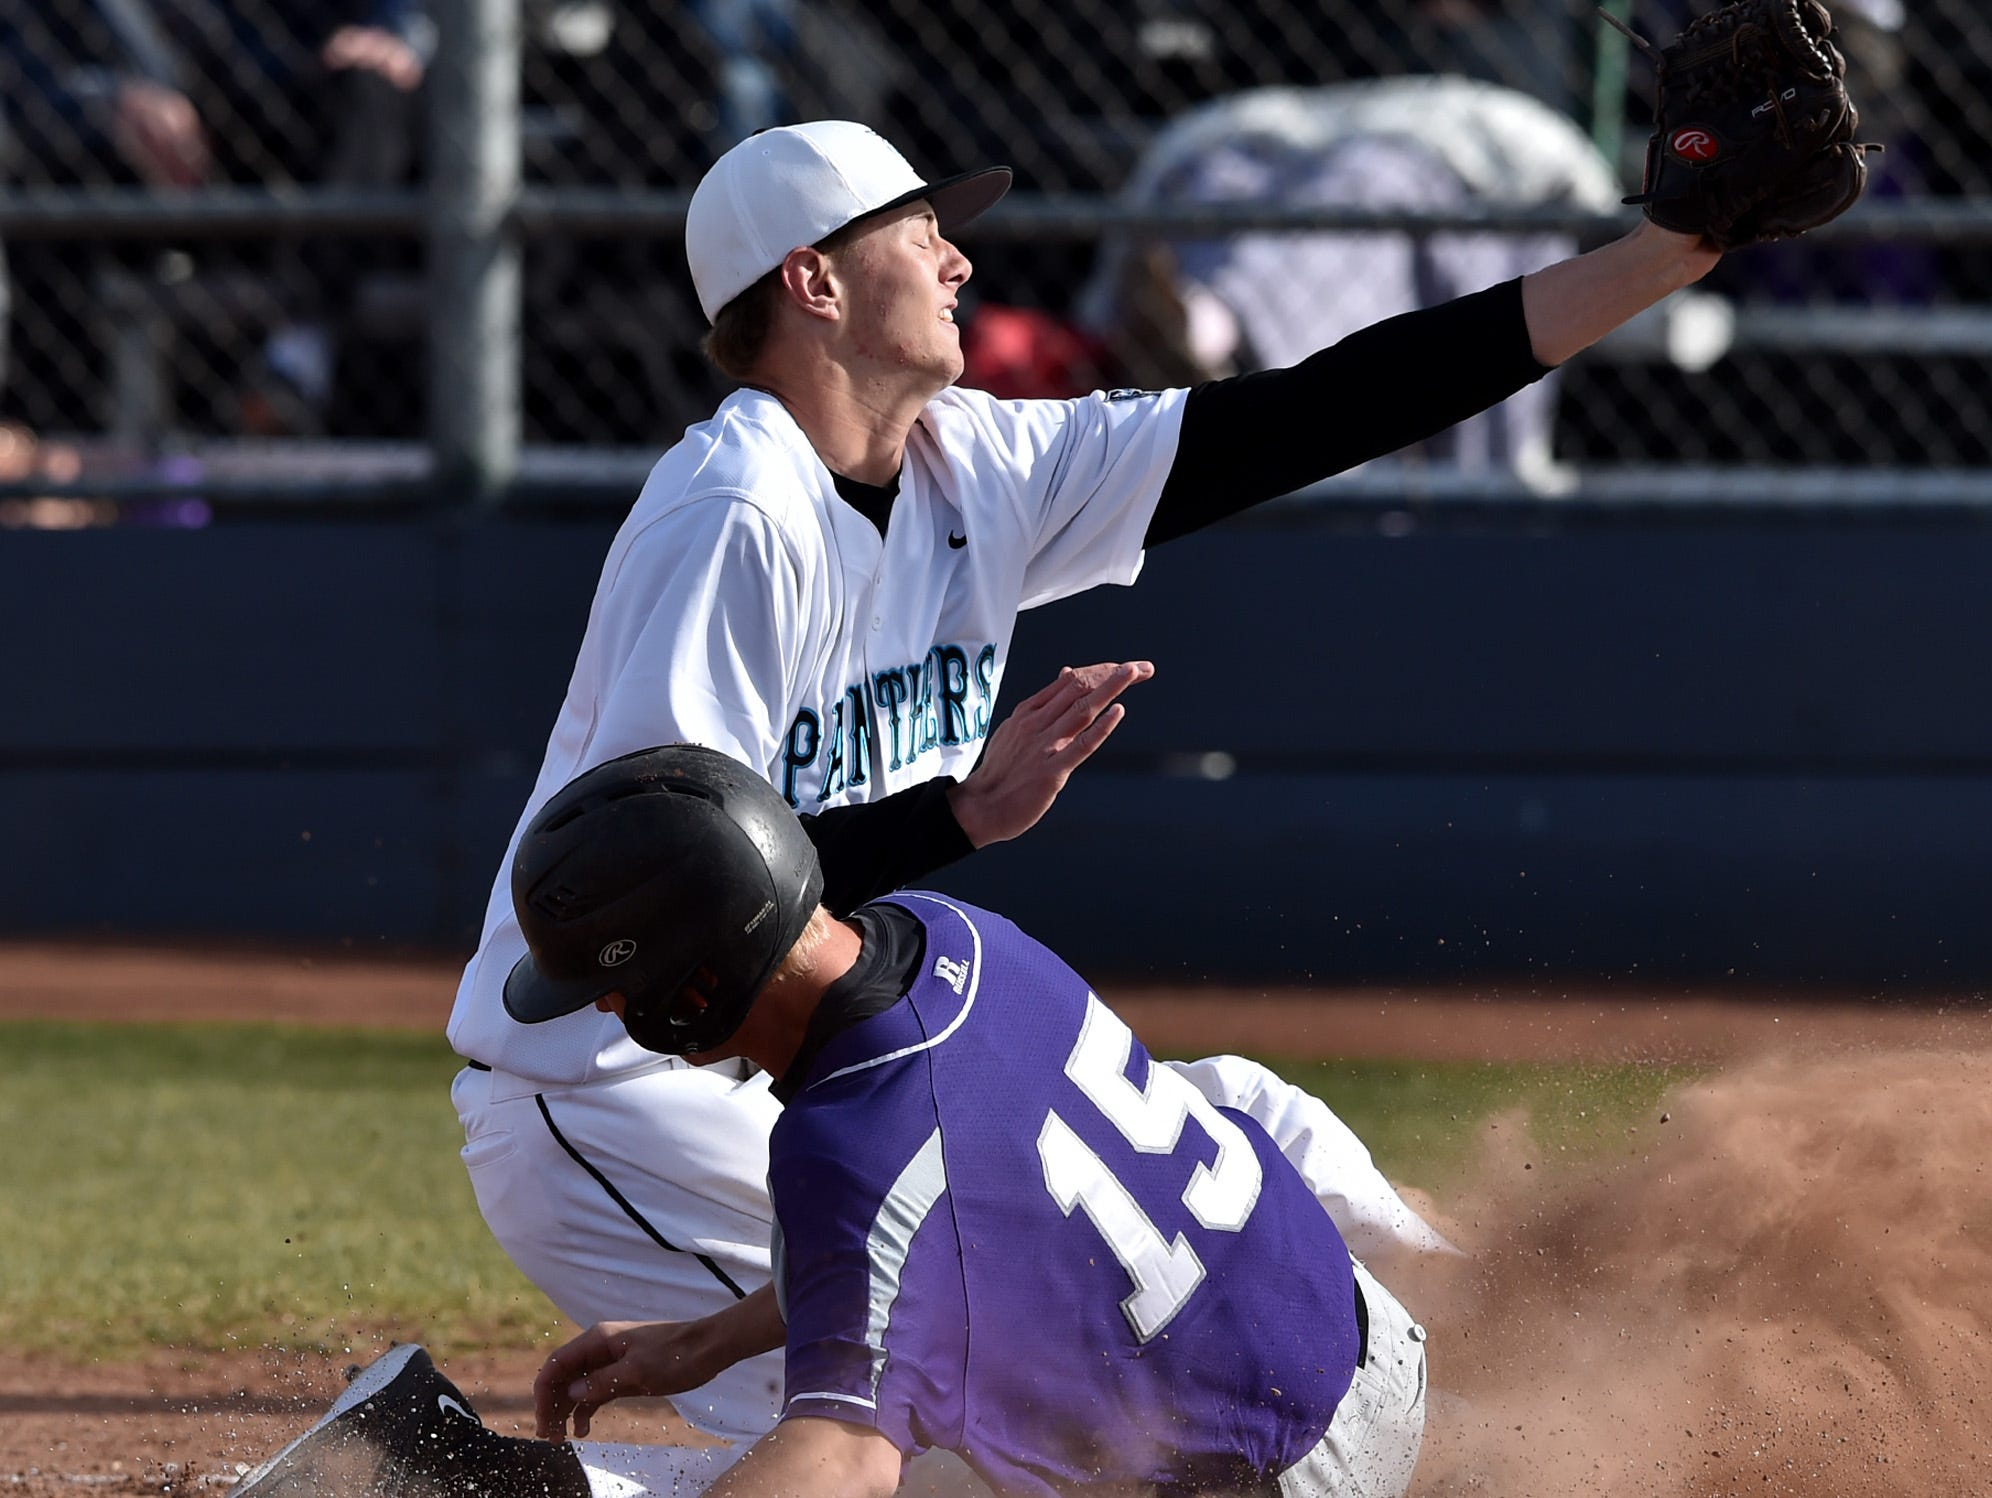 Spanish Spring's Alan Lummel steals home on a wild pitch by North Valley's Sean Flanary who attempts redeem himself but misses the catch Thursday at North Valleys.